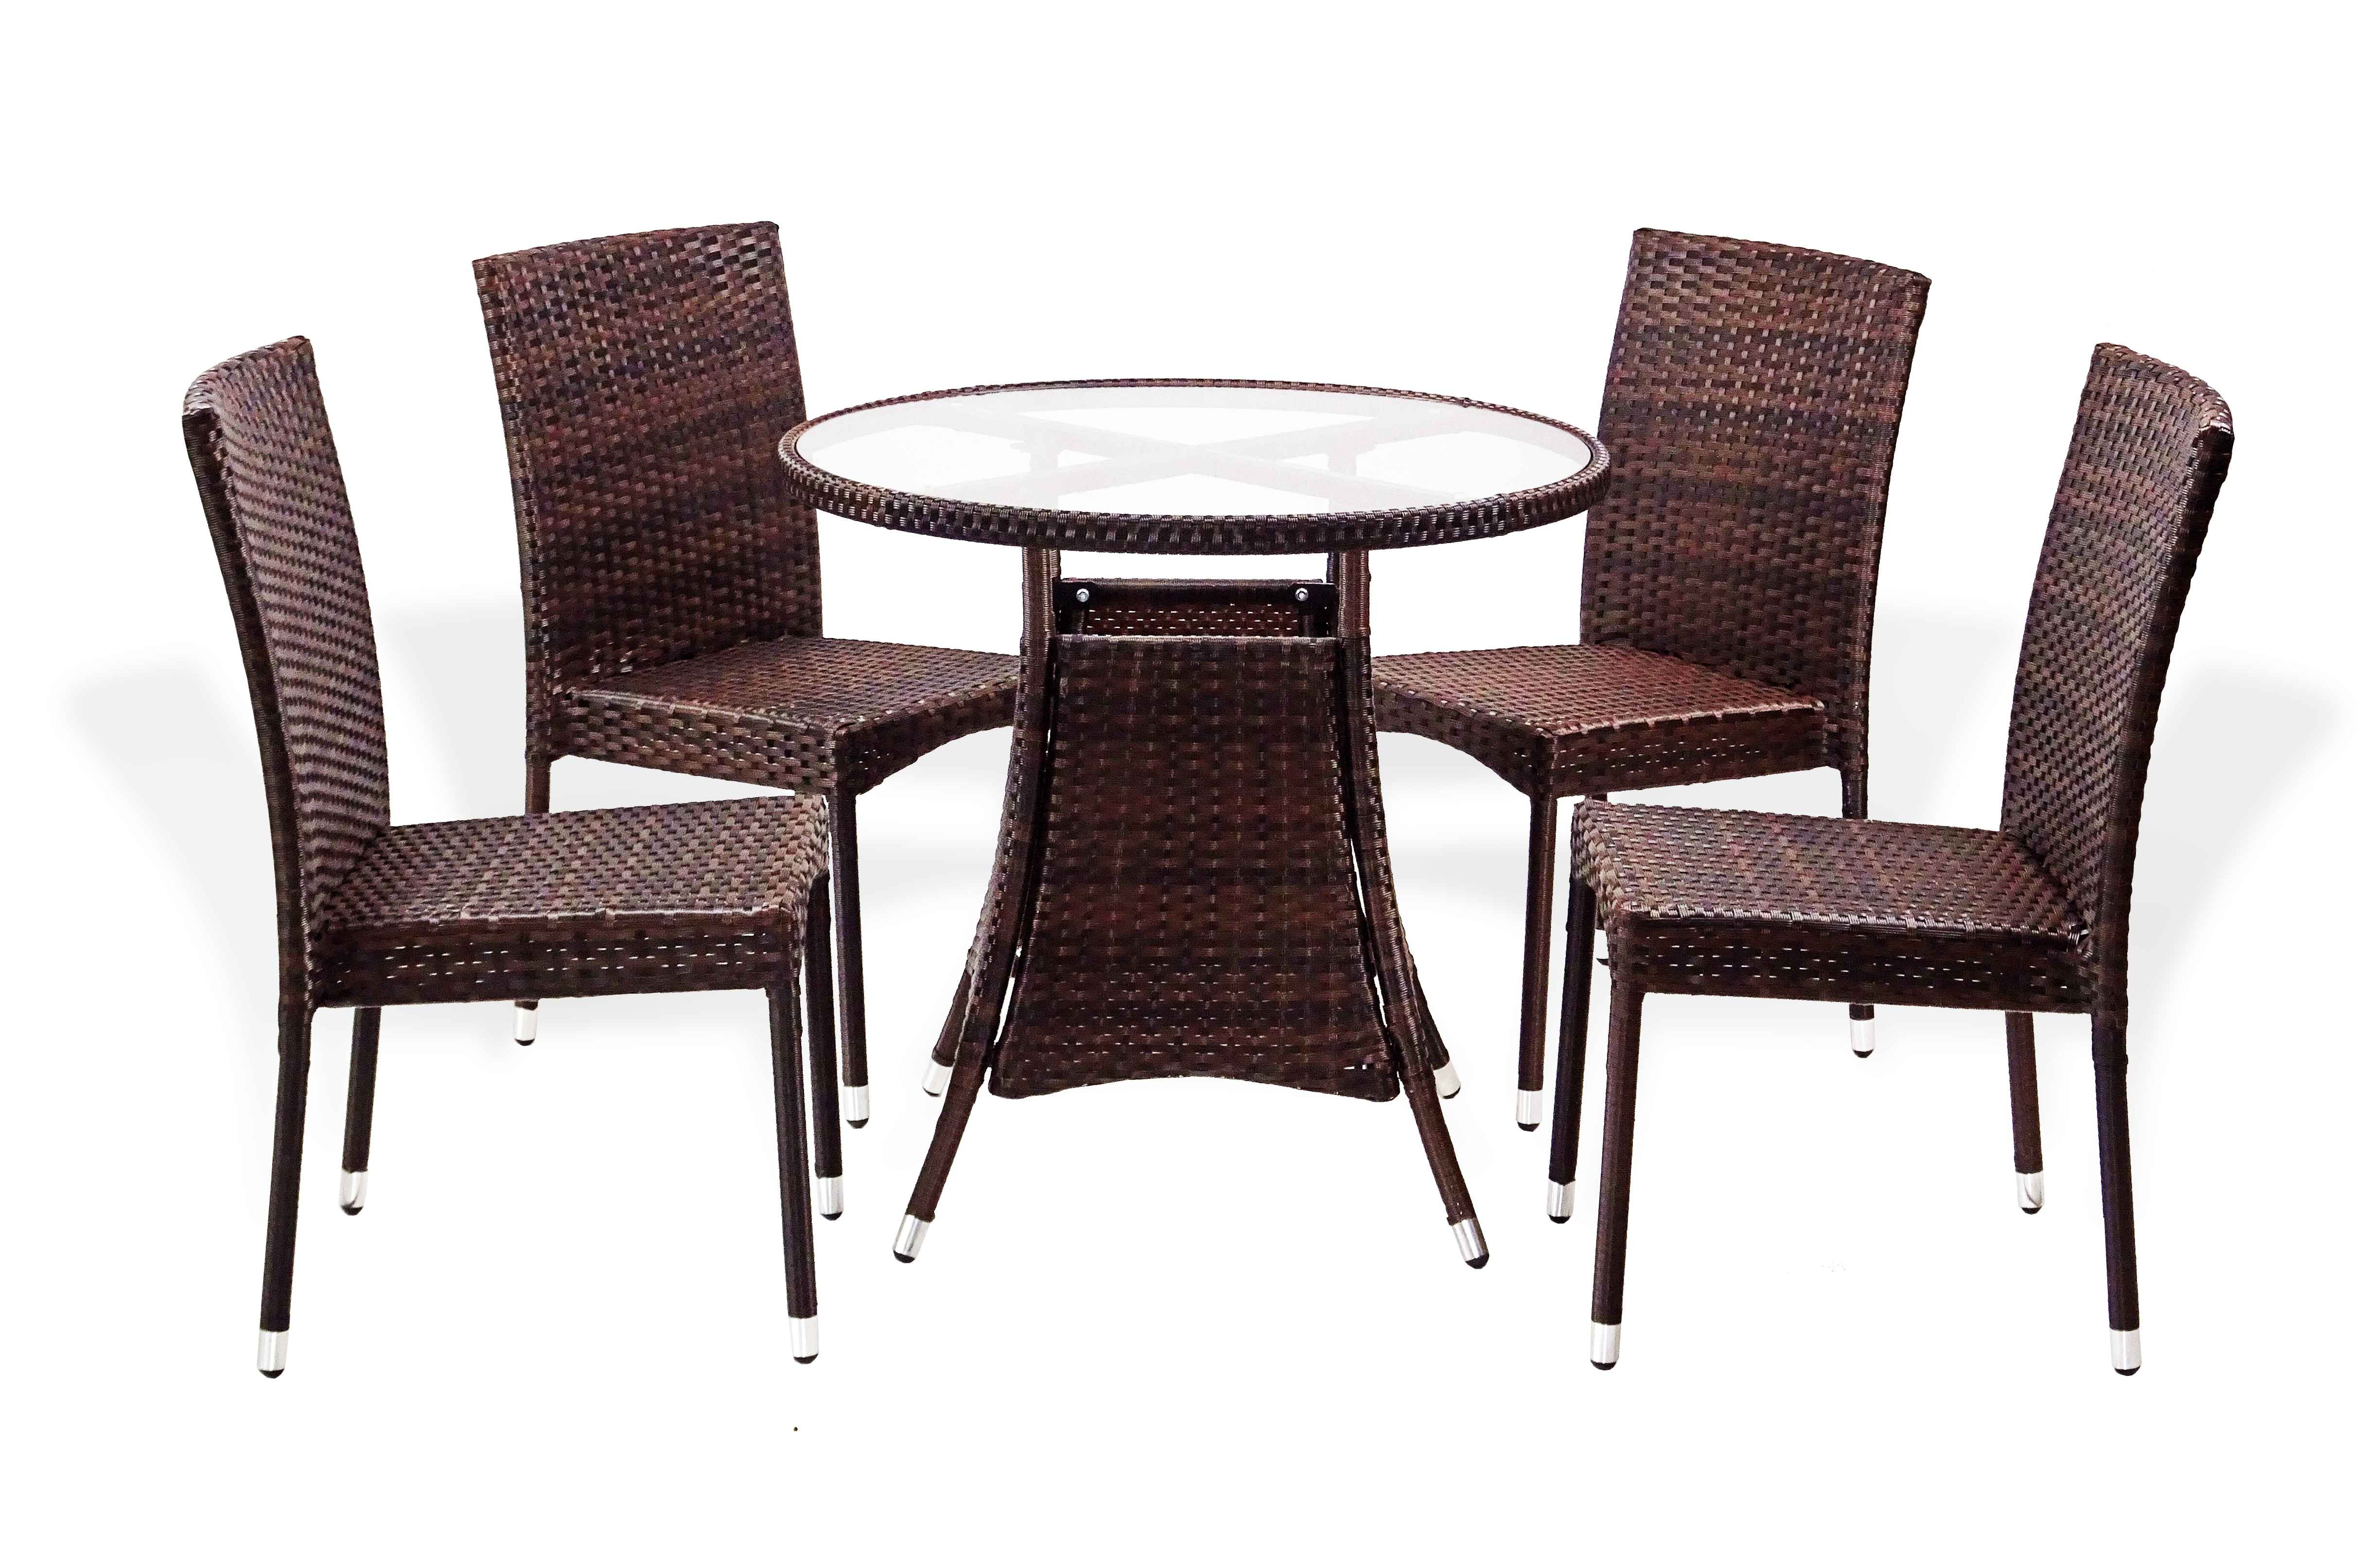 Patio 5 pc dinning set round table side chairs - Naturewood furniture for both indoor and outdoor sitting ...